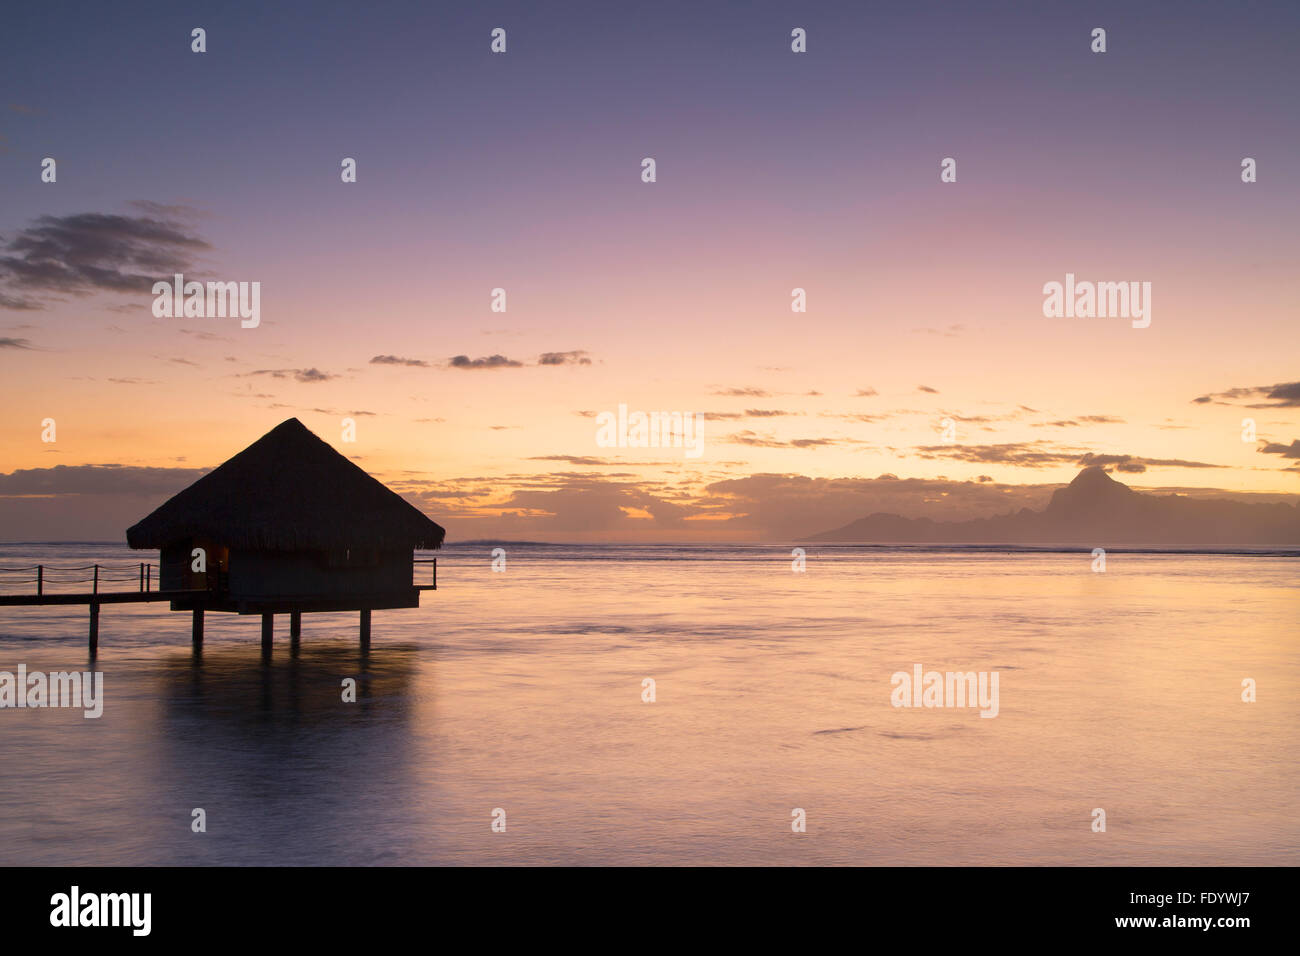 Overwater bungalow at Le Meridien Tahiti Hotel at sunset, Pape'ete, Tahiti, French Polynesia - Stock Image